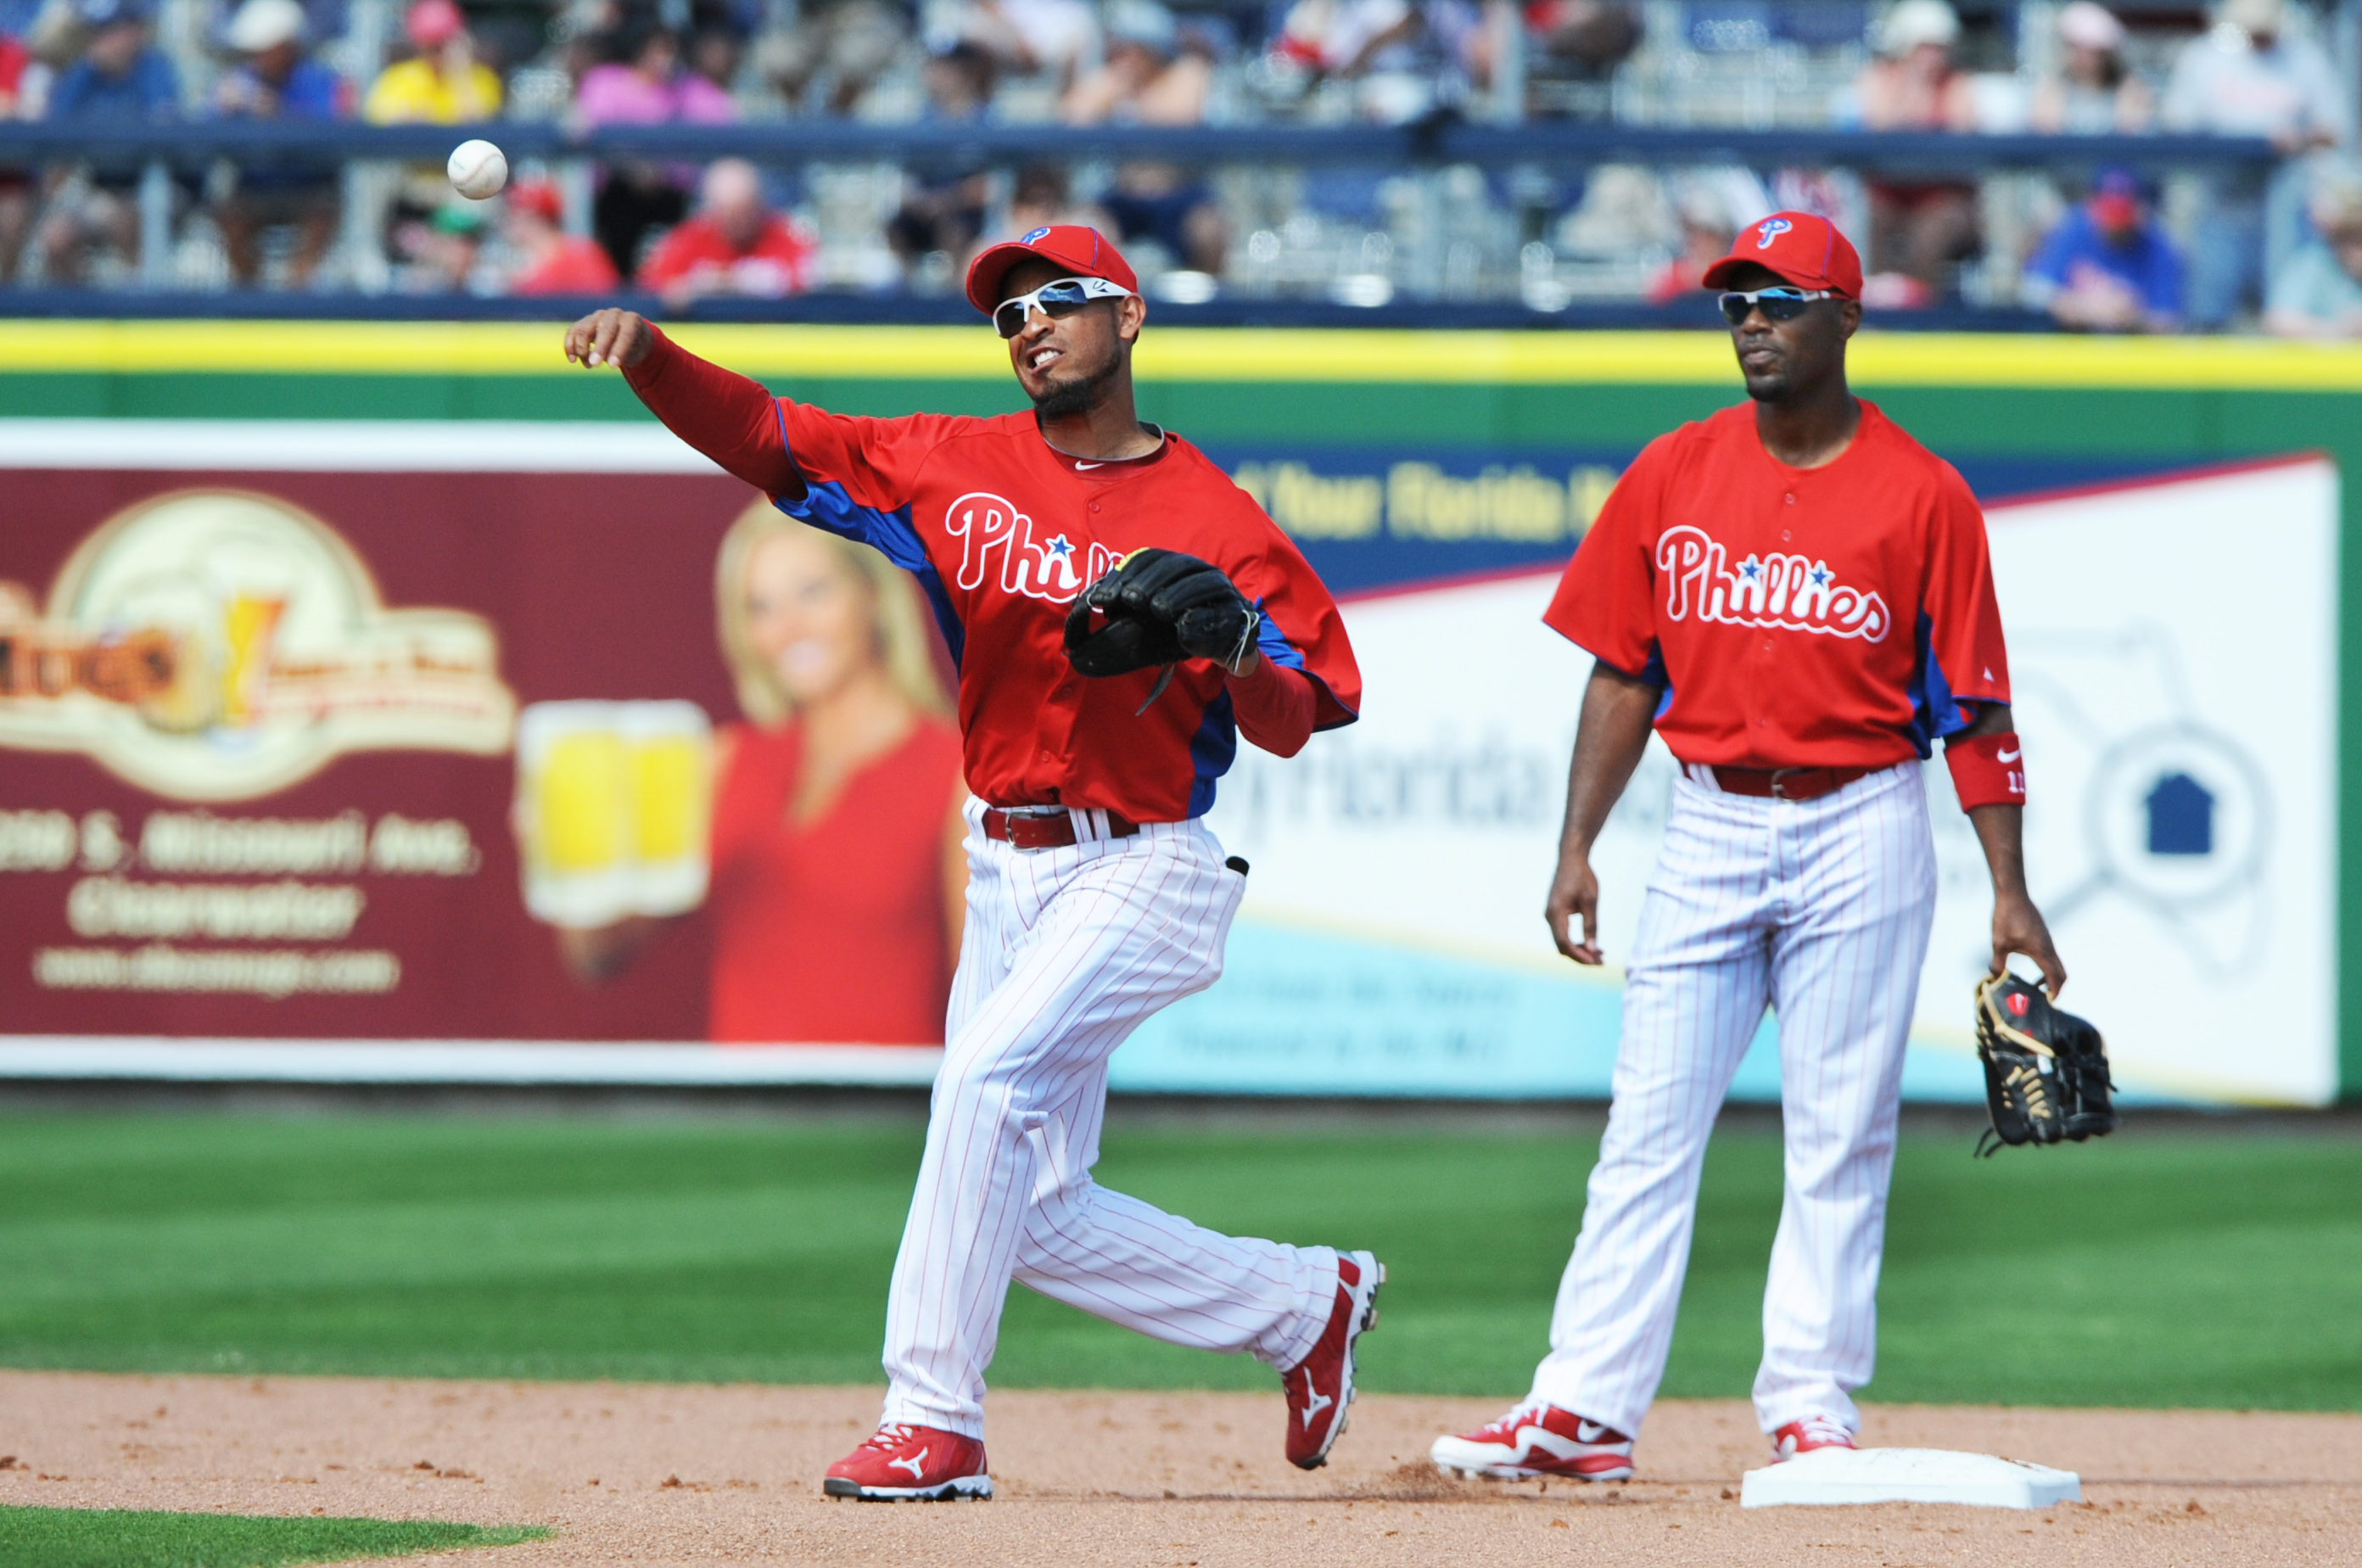 CLEARWATER, FL - FEBRUARY 27:  Infielder Wilson Valdez #21 throws in front of shortstop Jimmy Rollins #11 of the Philadelphia Phillies during play against the New York Yankees February 27, 2011 at Bright House Field in Clearwater, Florida.  (Photo by Al M